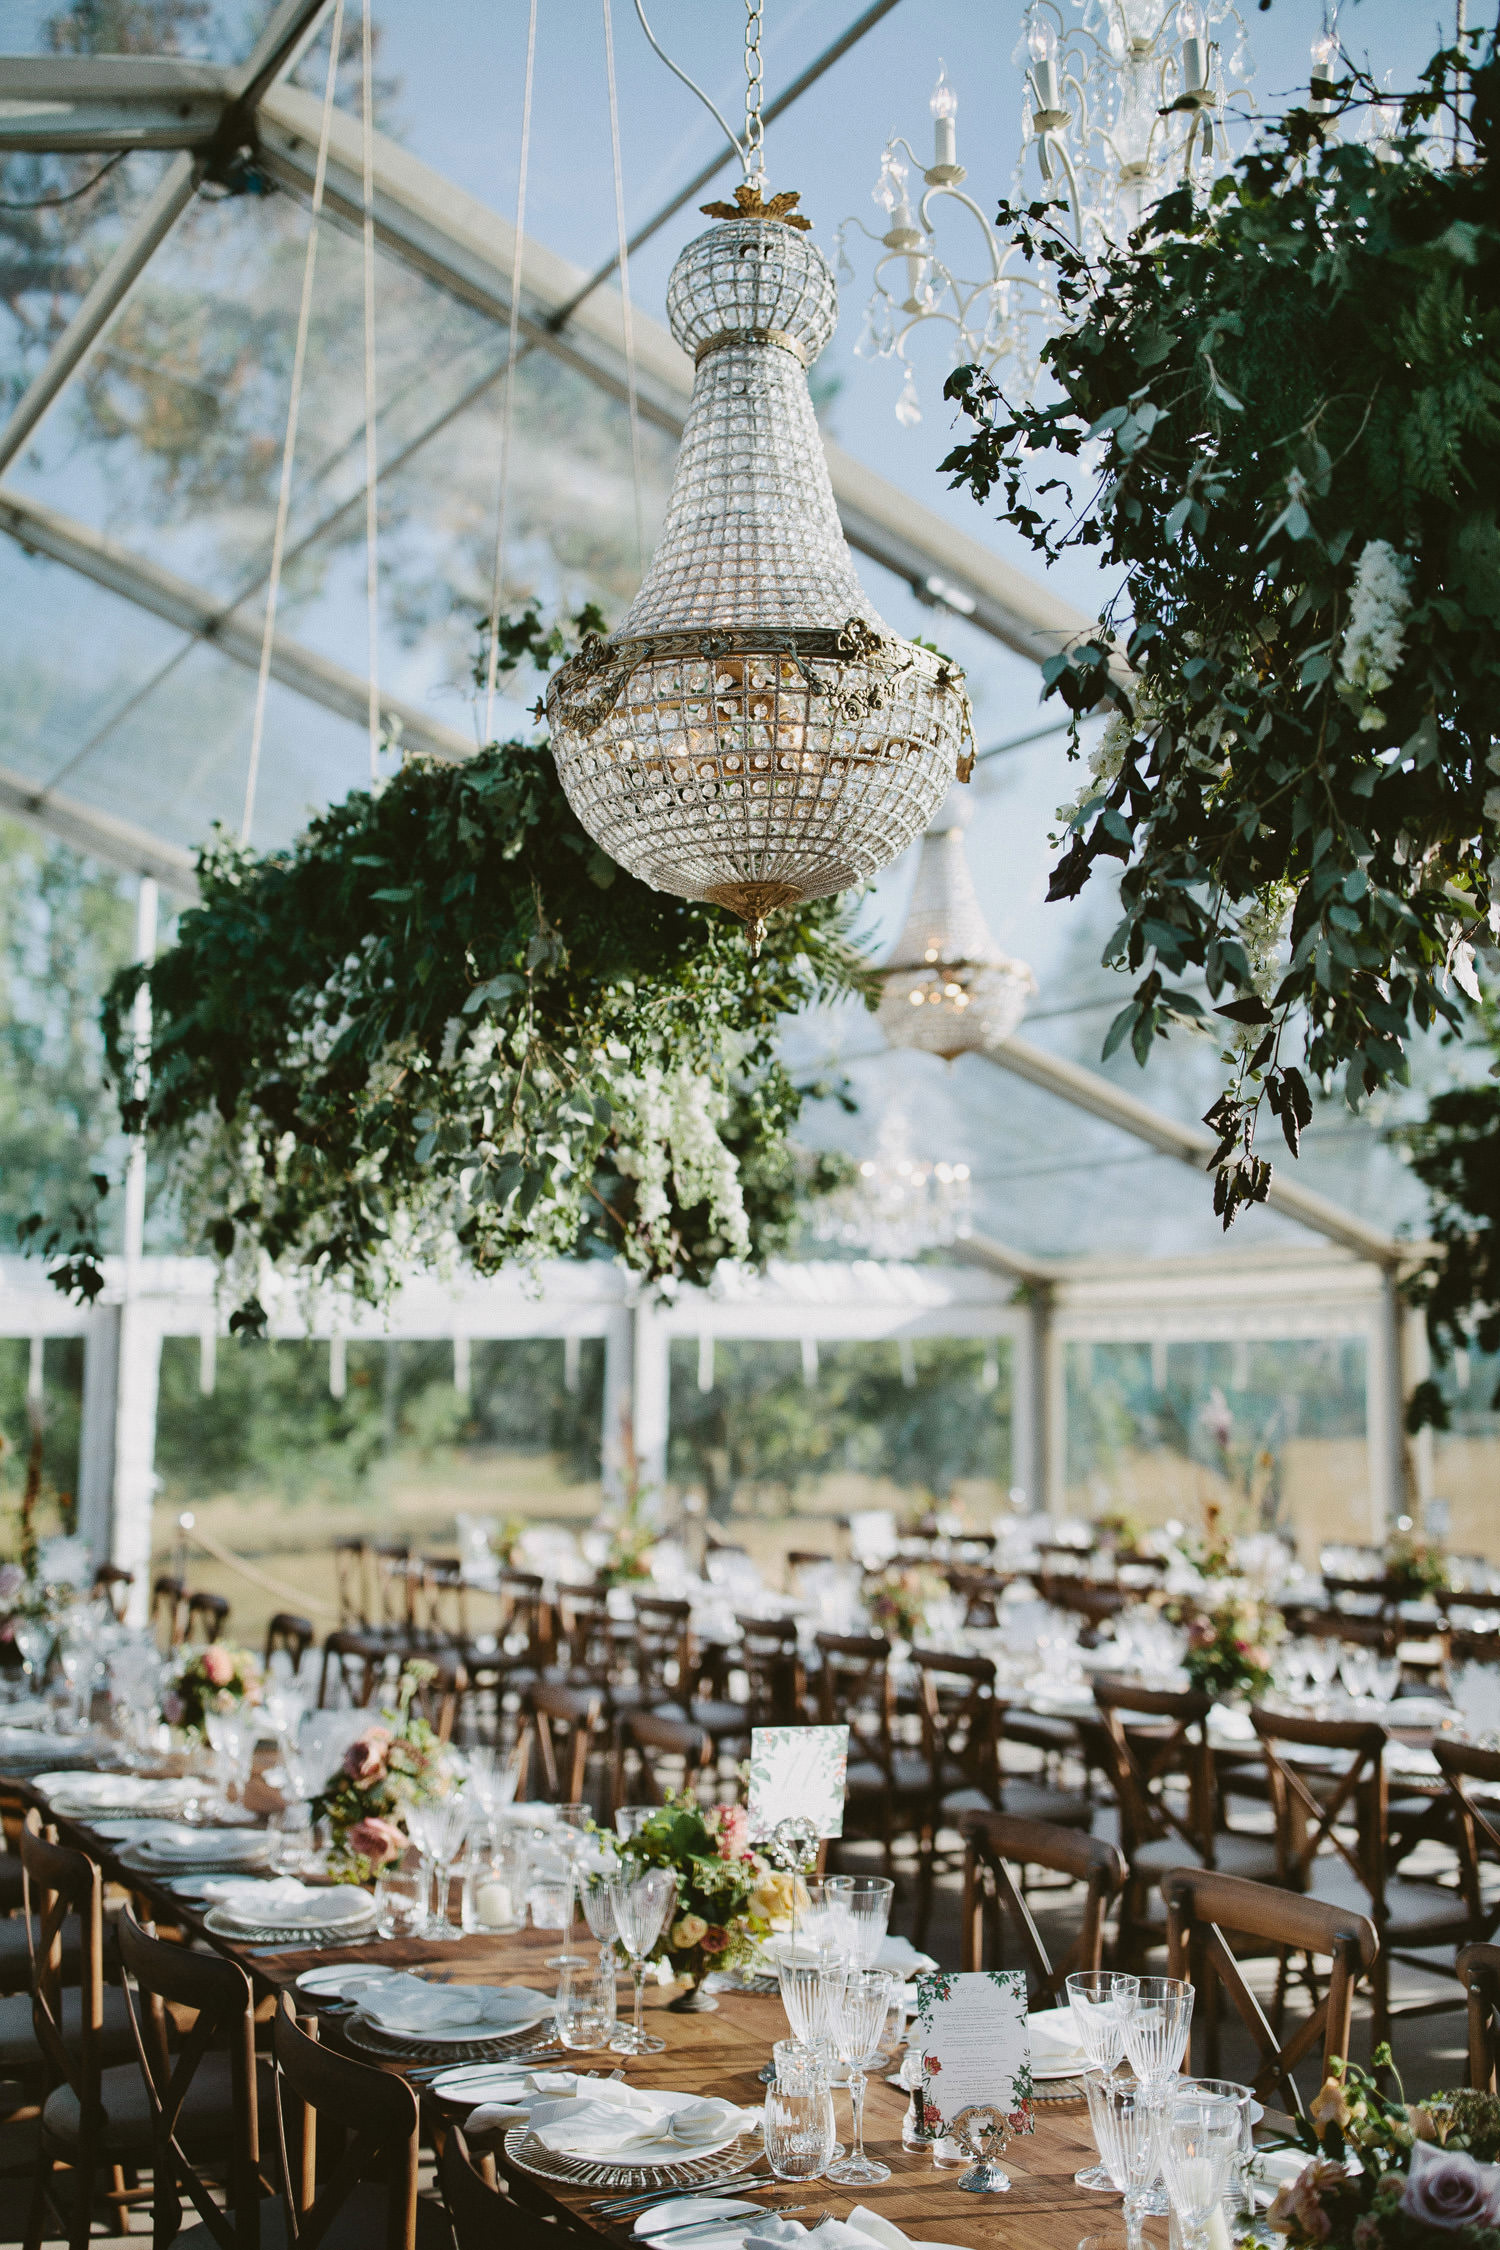 Chandeliers hanging in clear marquee with natural florals over wedding tables